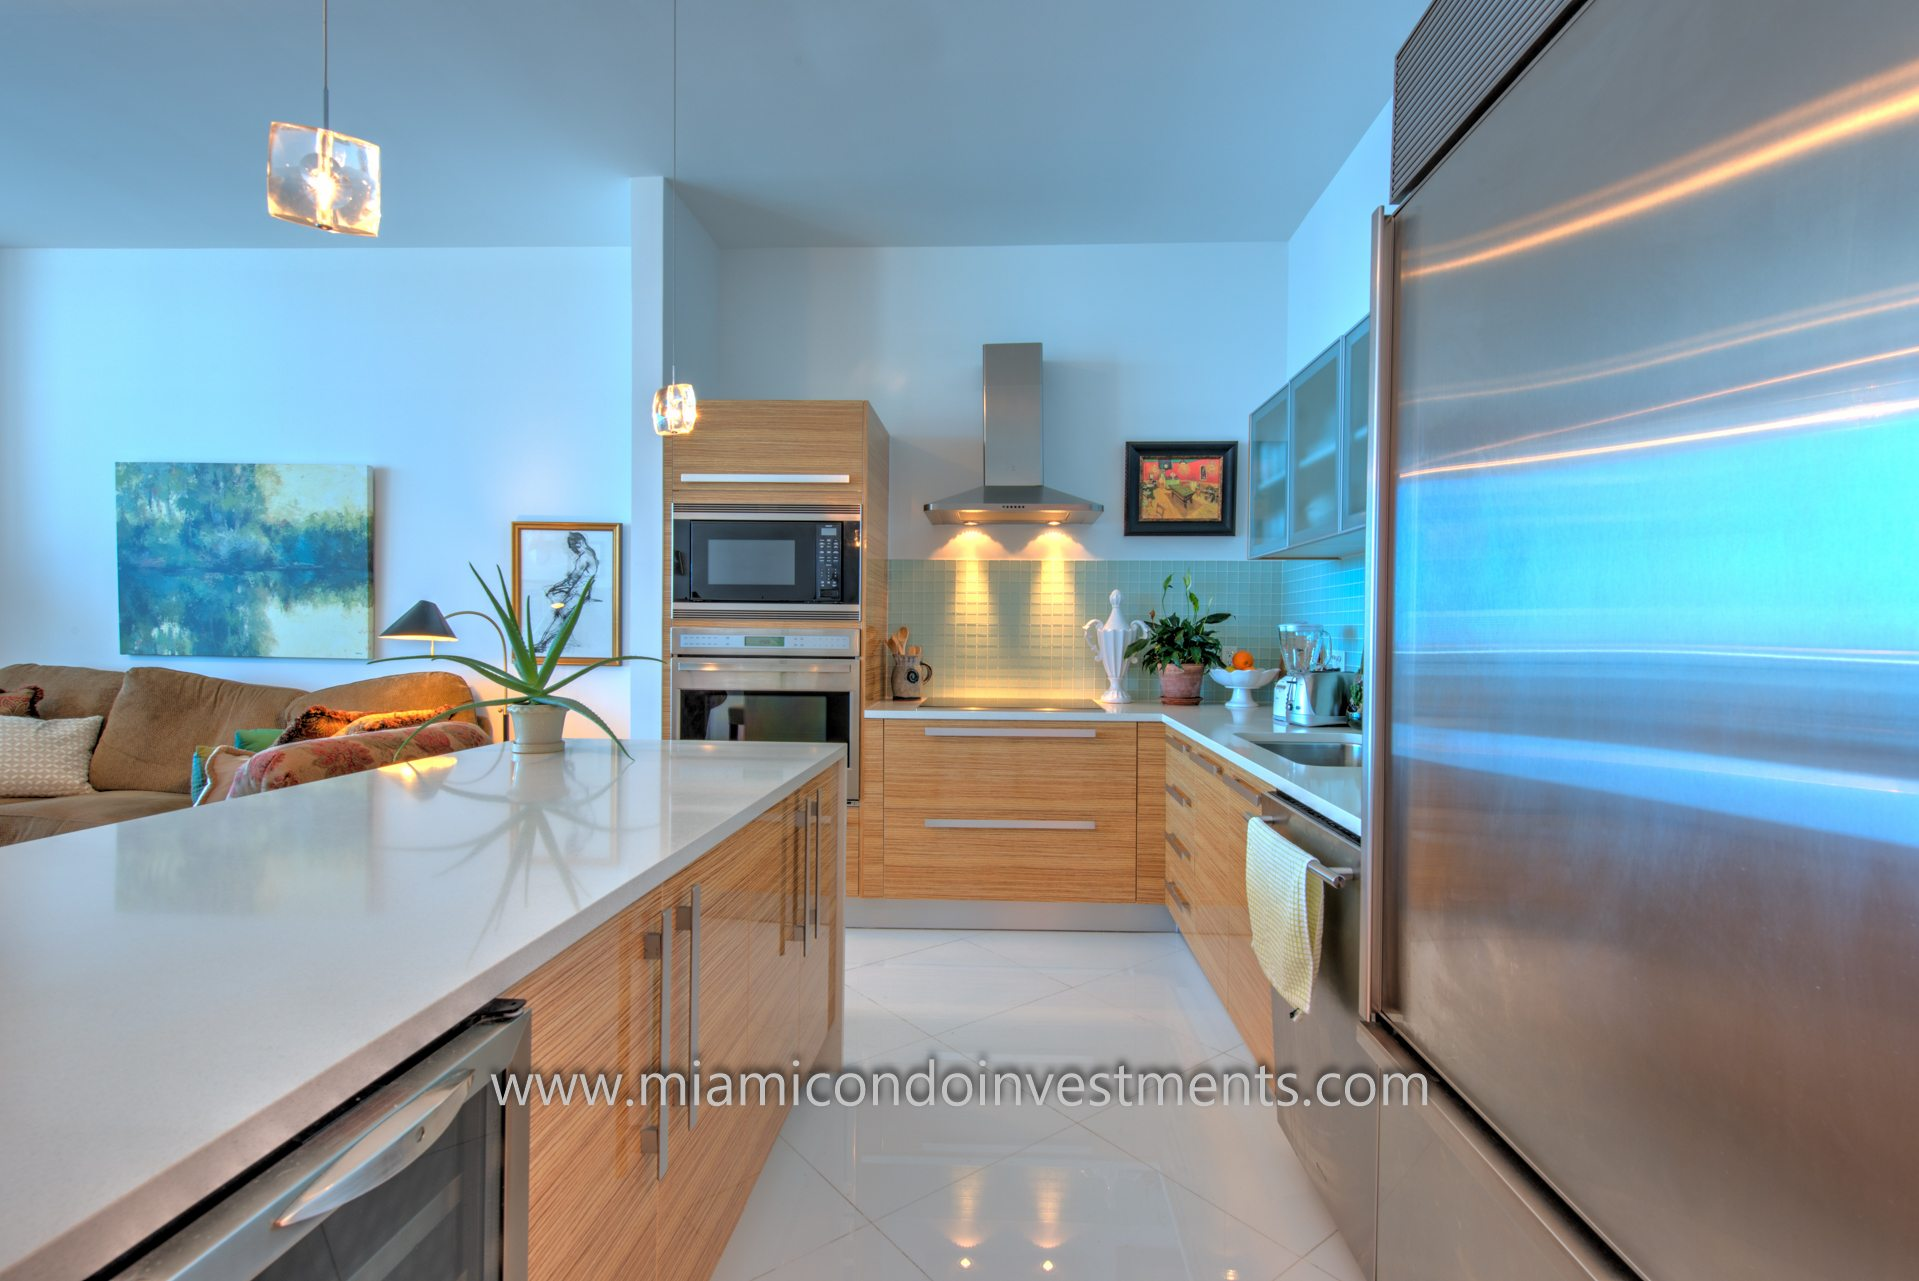 Stainless steel appliances by Wolf & Sub-Zero. Includes refrigerator, wine cooler, dishwasher, oven, stove, and microwave.